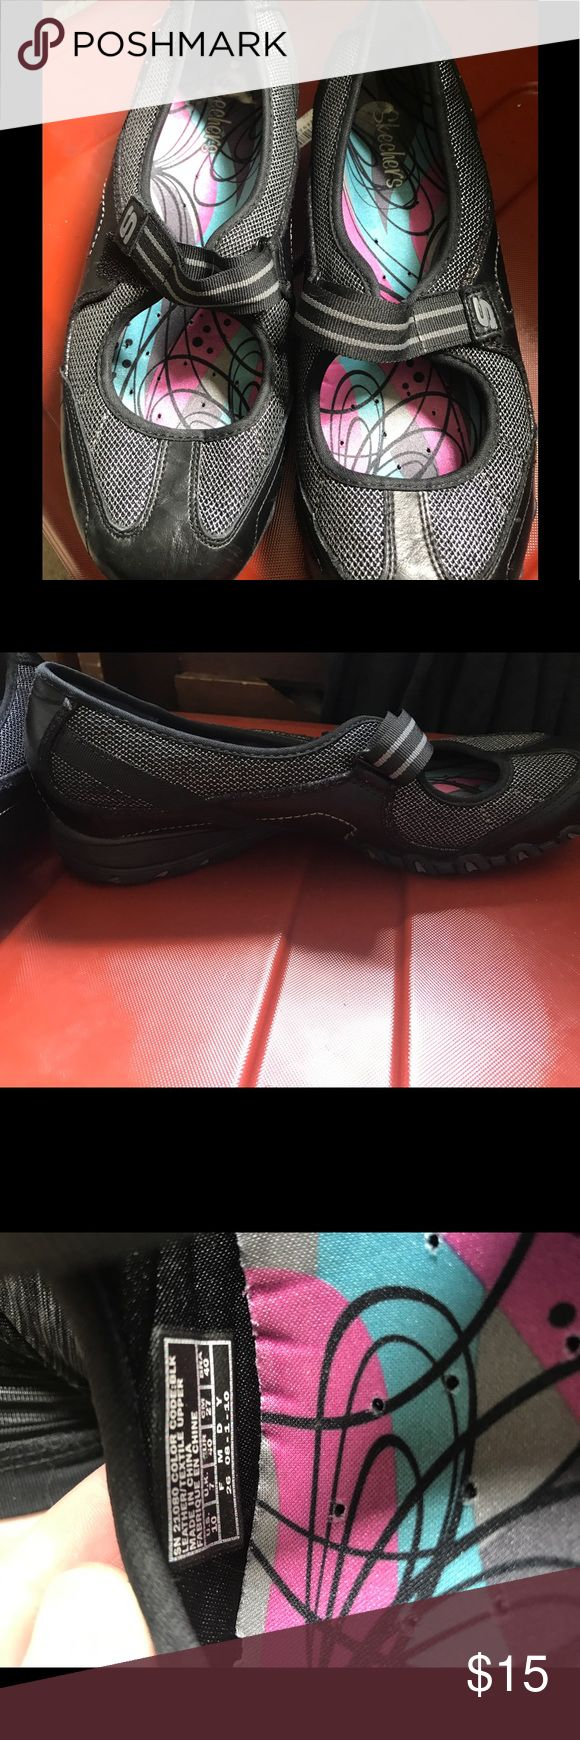 Skechers slip on shoes with Velcro strap Skechers black and gray speckles has Velcro strap across top of foot. Size 10 very comfortable, but after ankle break cannot wear them. Skechers Shoes Athletic Shoes